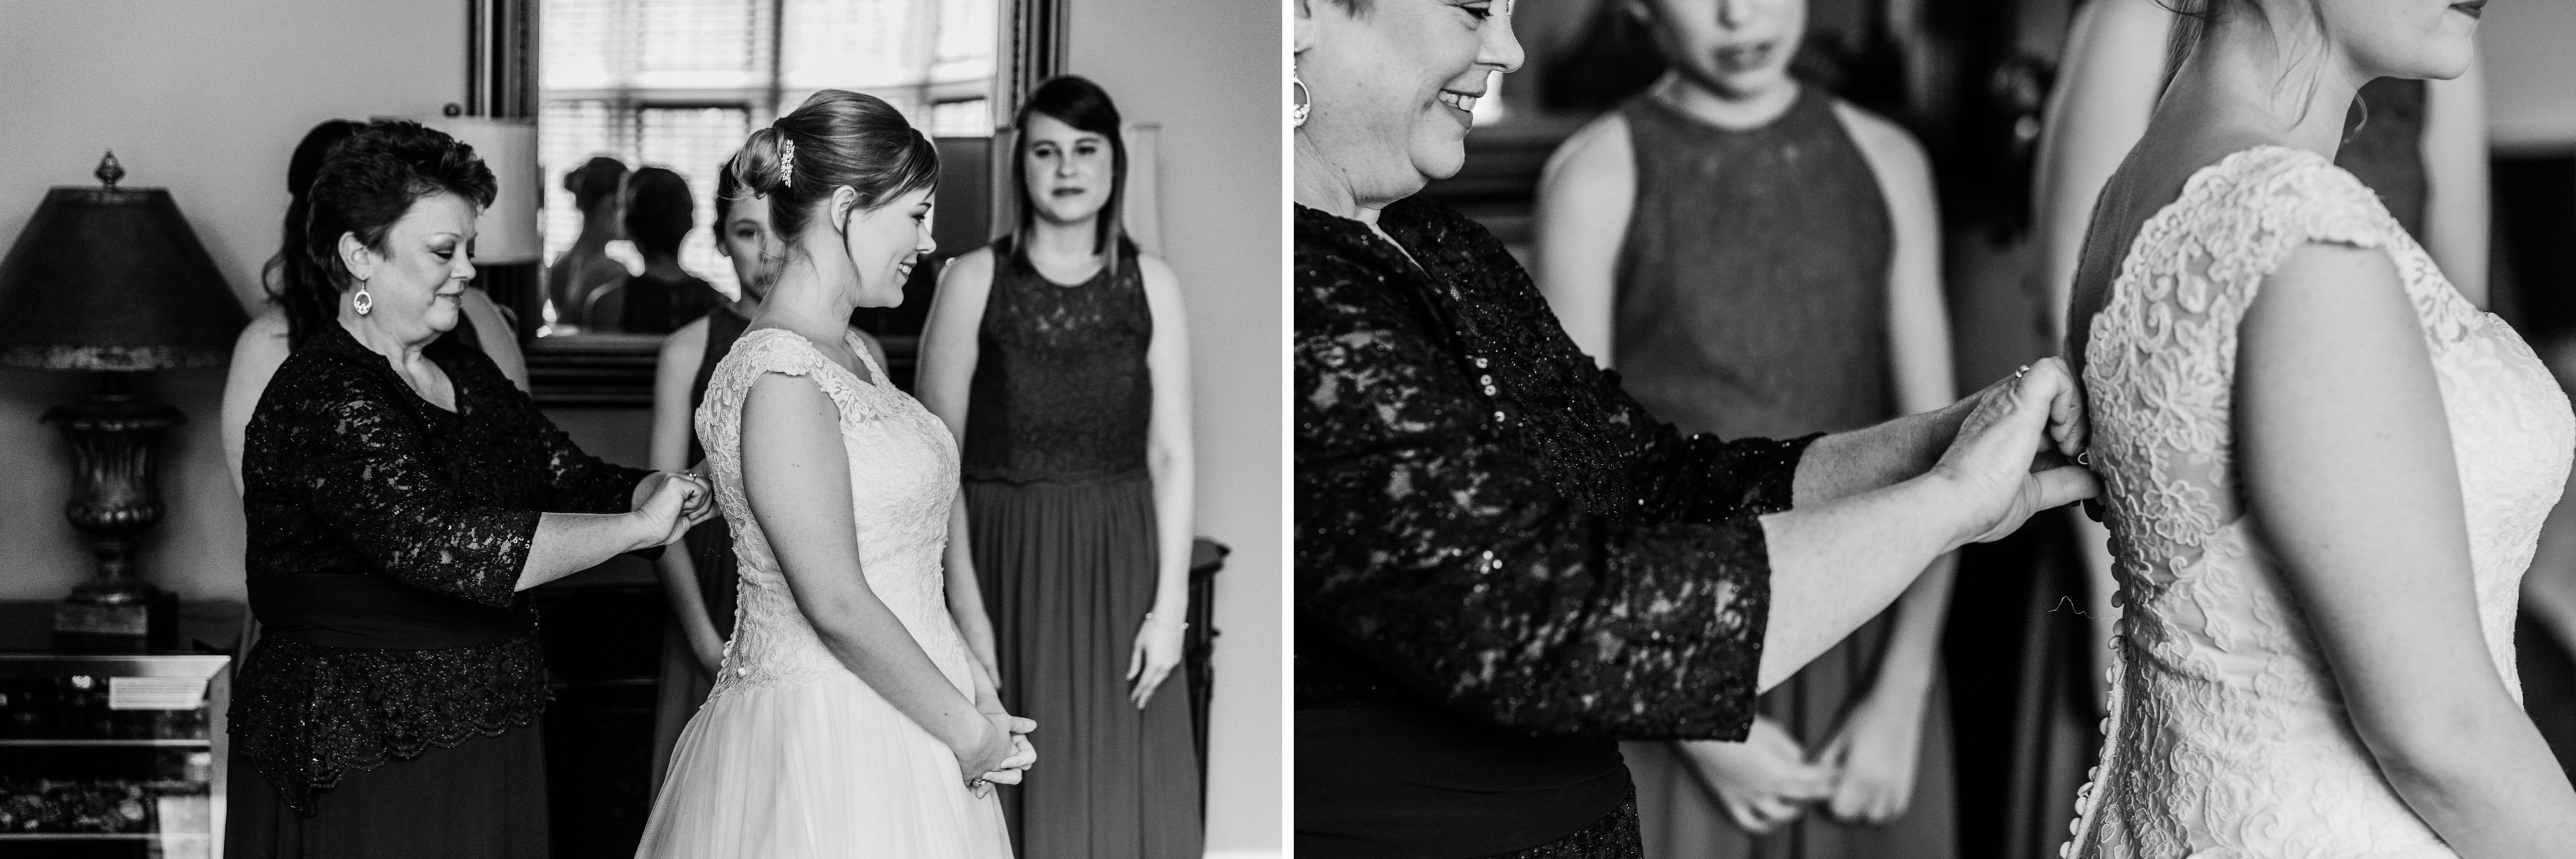 MAULDIN_WEDDING_MONTGOMERY_ALABAMA_WEDDING_PHOTOGRAPHY_17